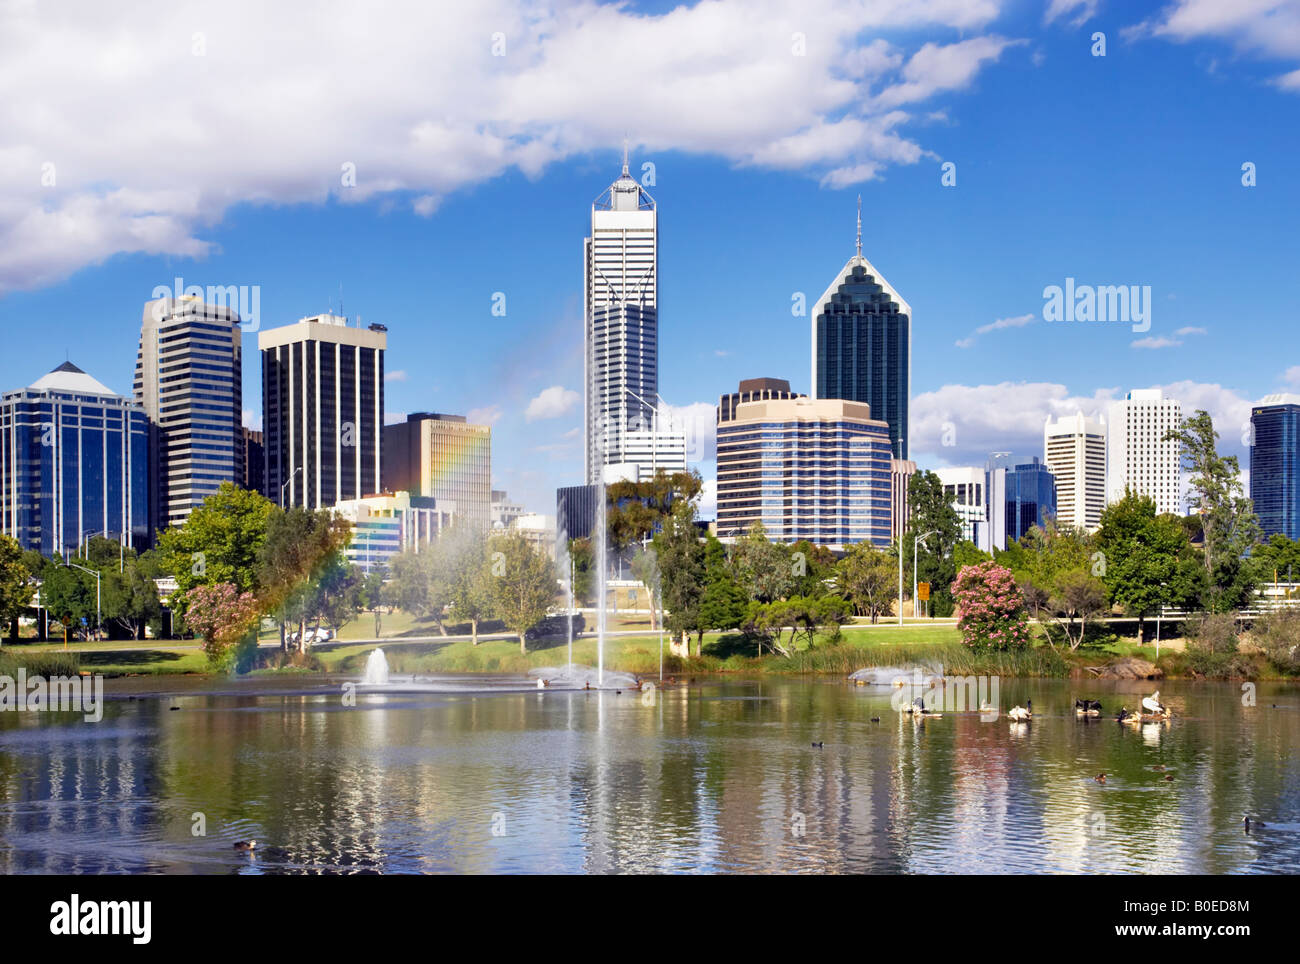 Perth's skyscrapers towering above an inner city park. A rainbow appears in the fountain's spray. Perth, - Stock Image